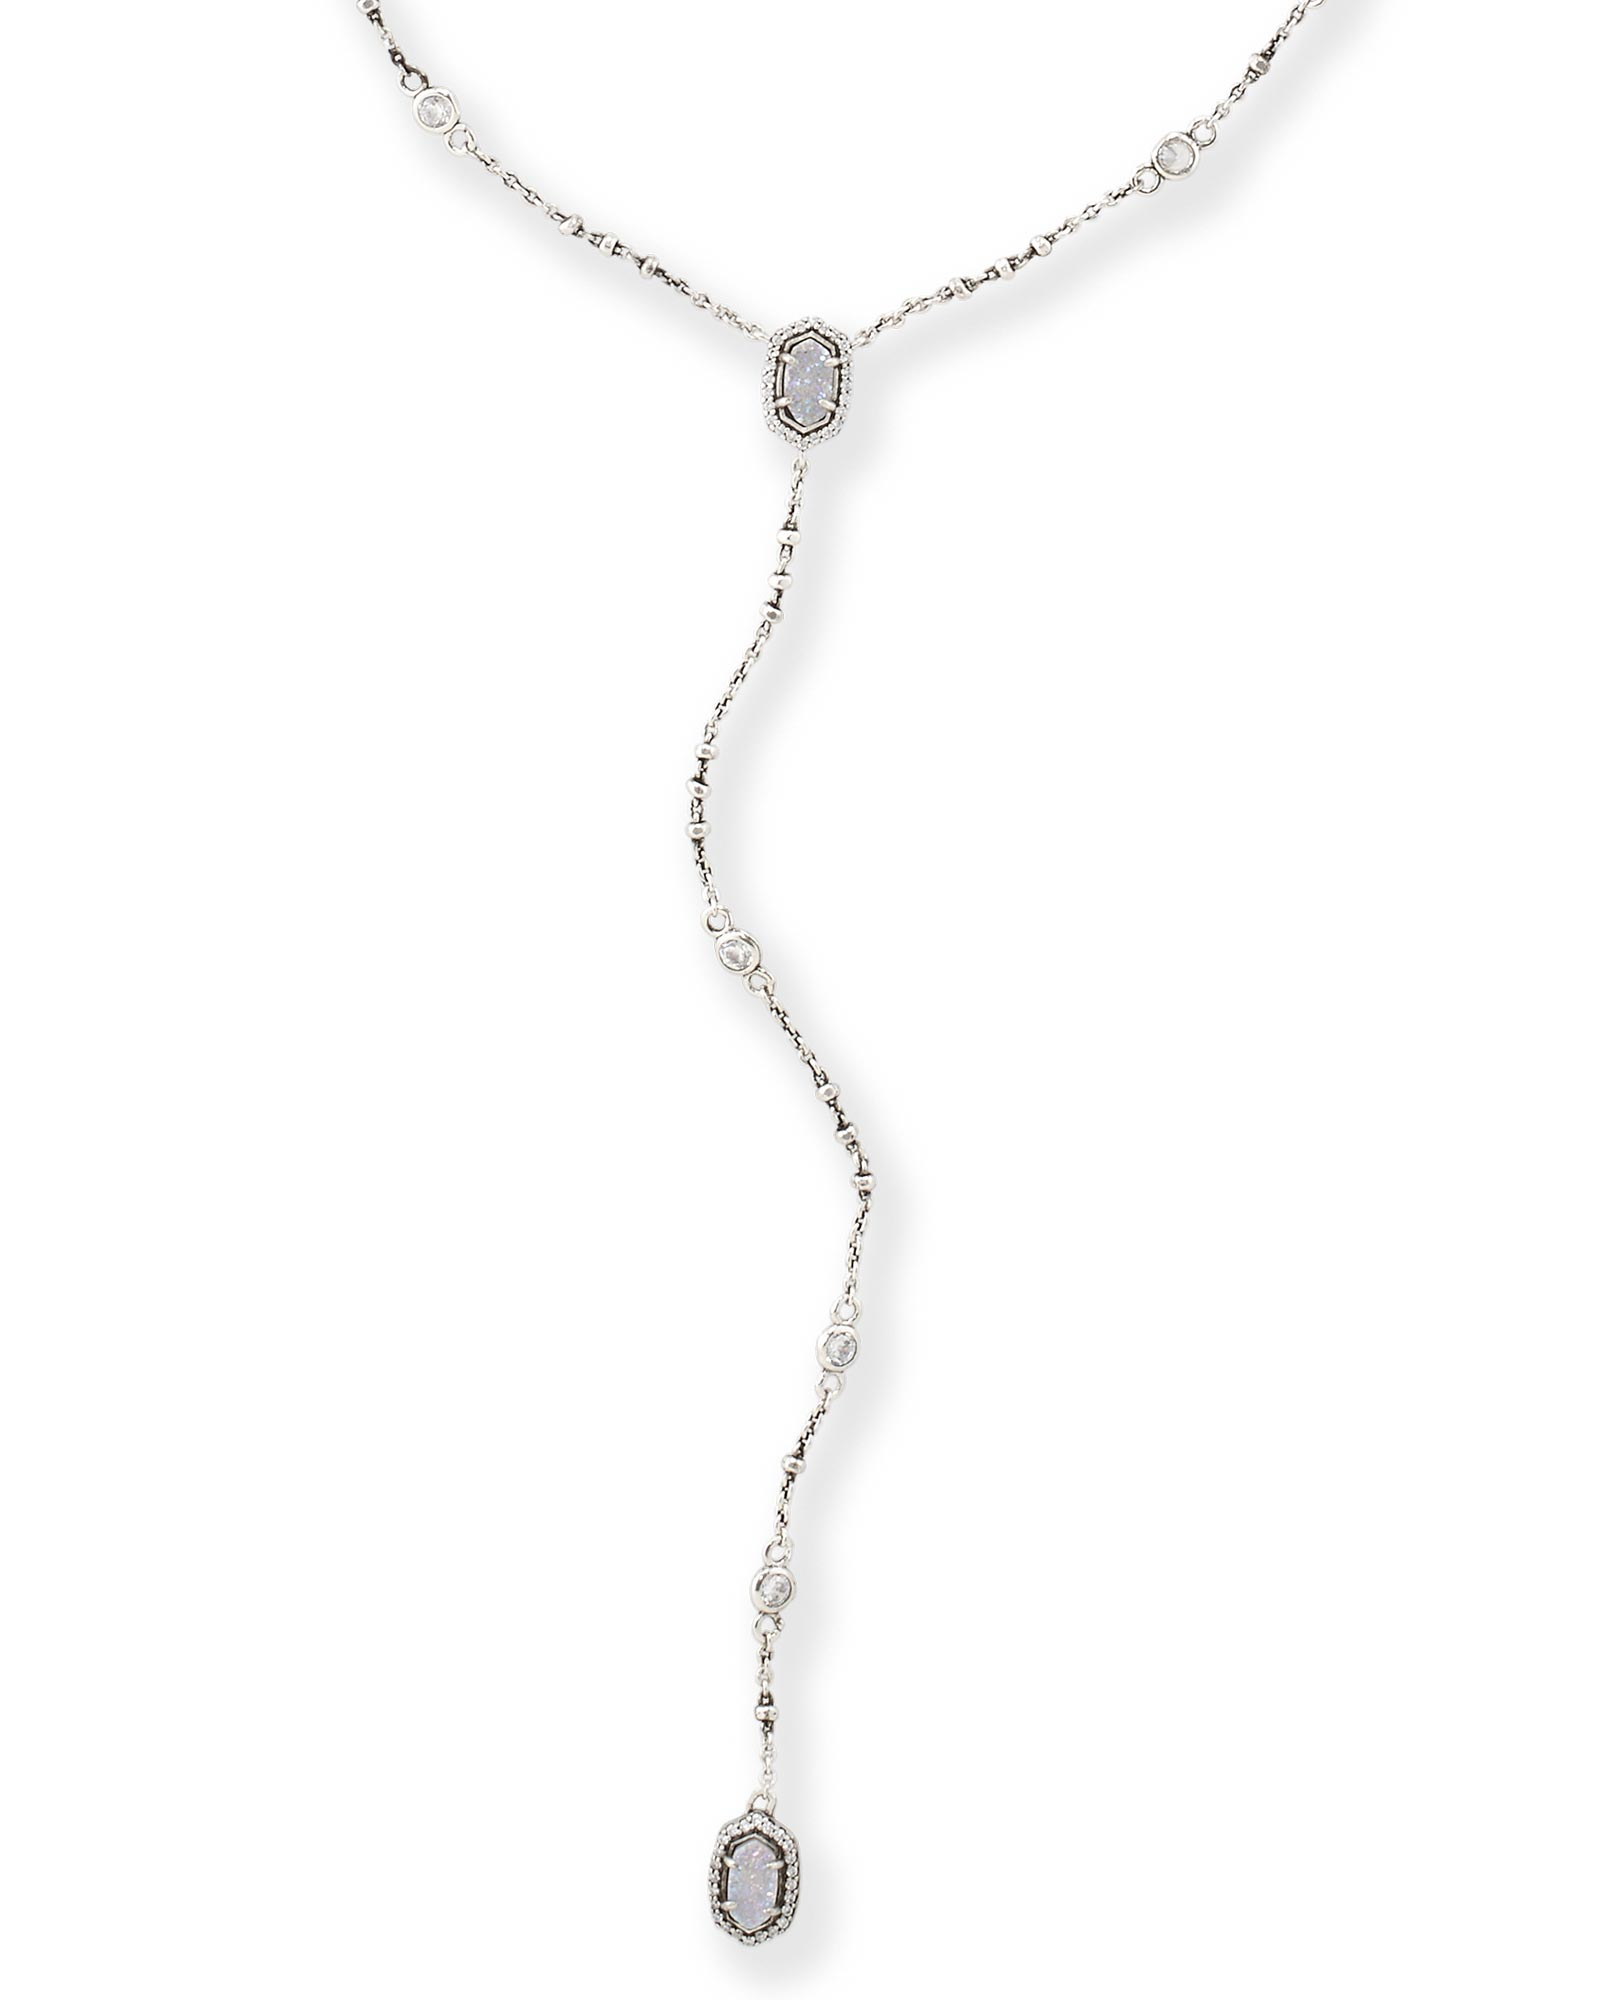 Claudia Lariat Necklace in Antique Silver